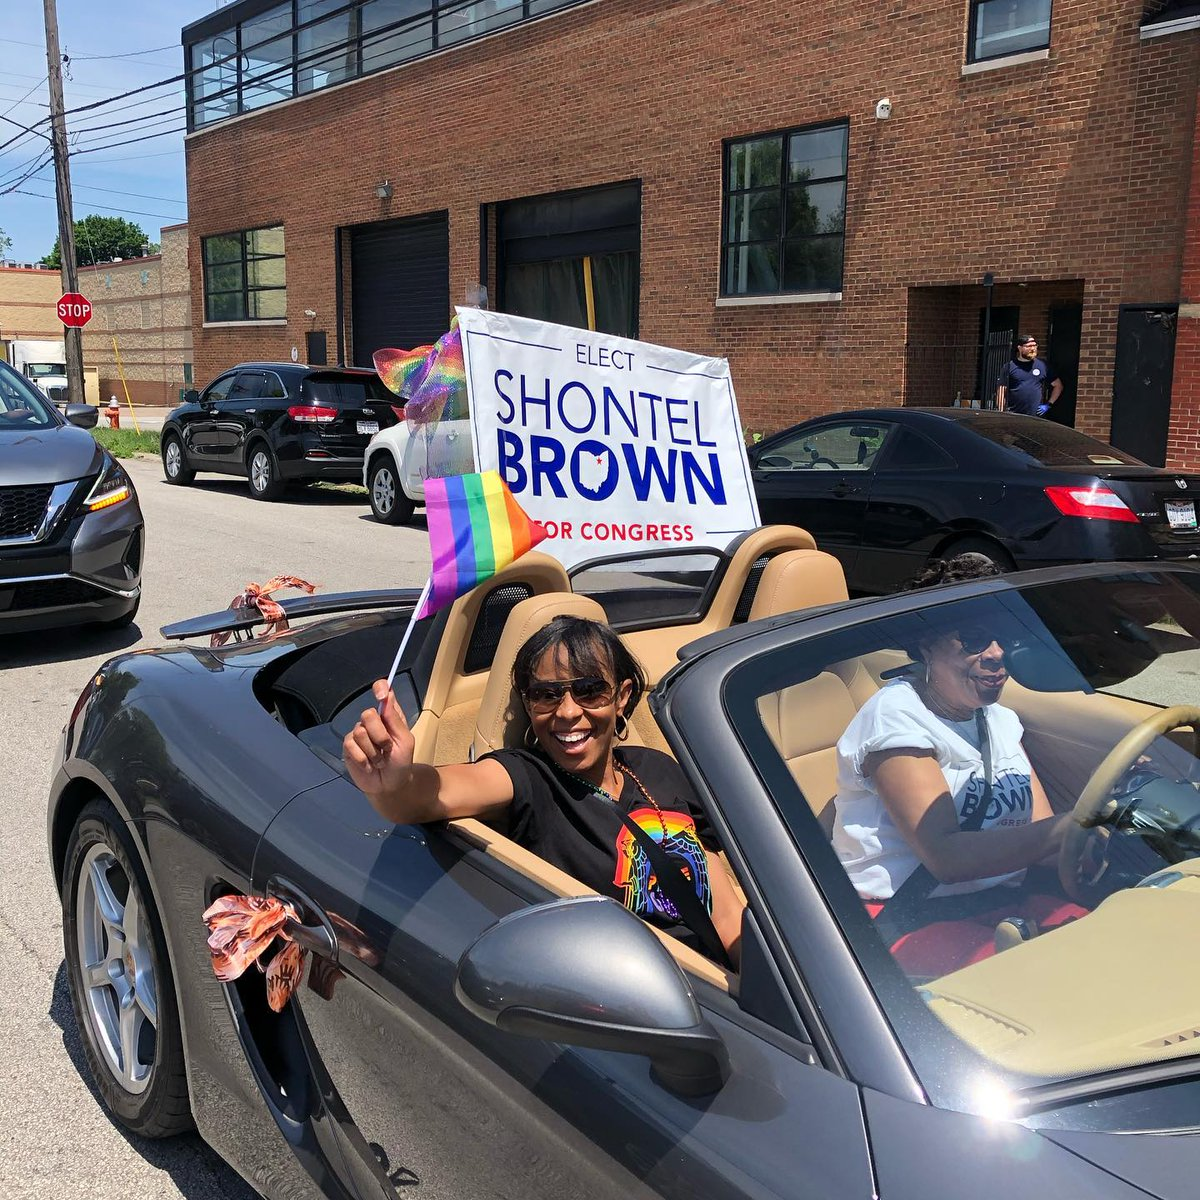 Thank you for allowing me to take part in this weekends PRIDE parade 🏳️🌈 Cleveland! Grateful to be surrounded by so many amazing people! #jointhejourney #clevelandpride https://t.co/s2rPfH7Y64